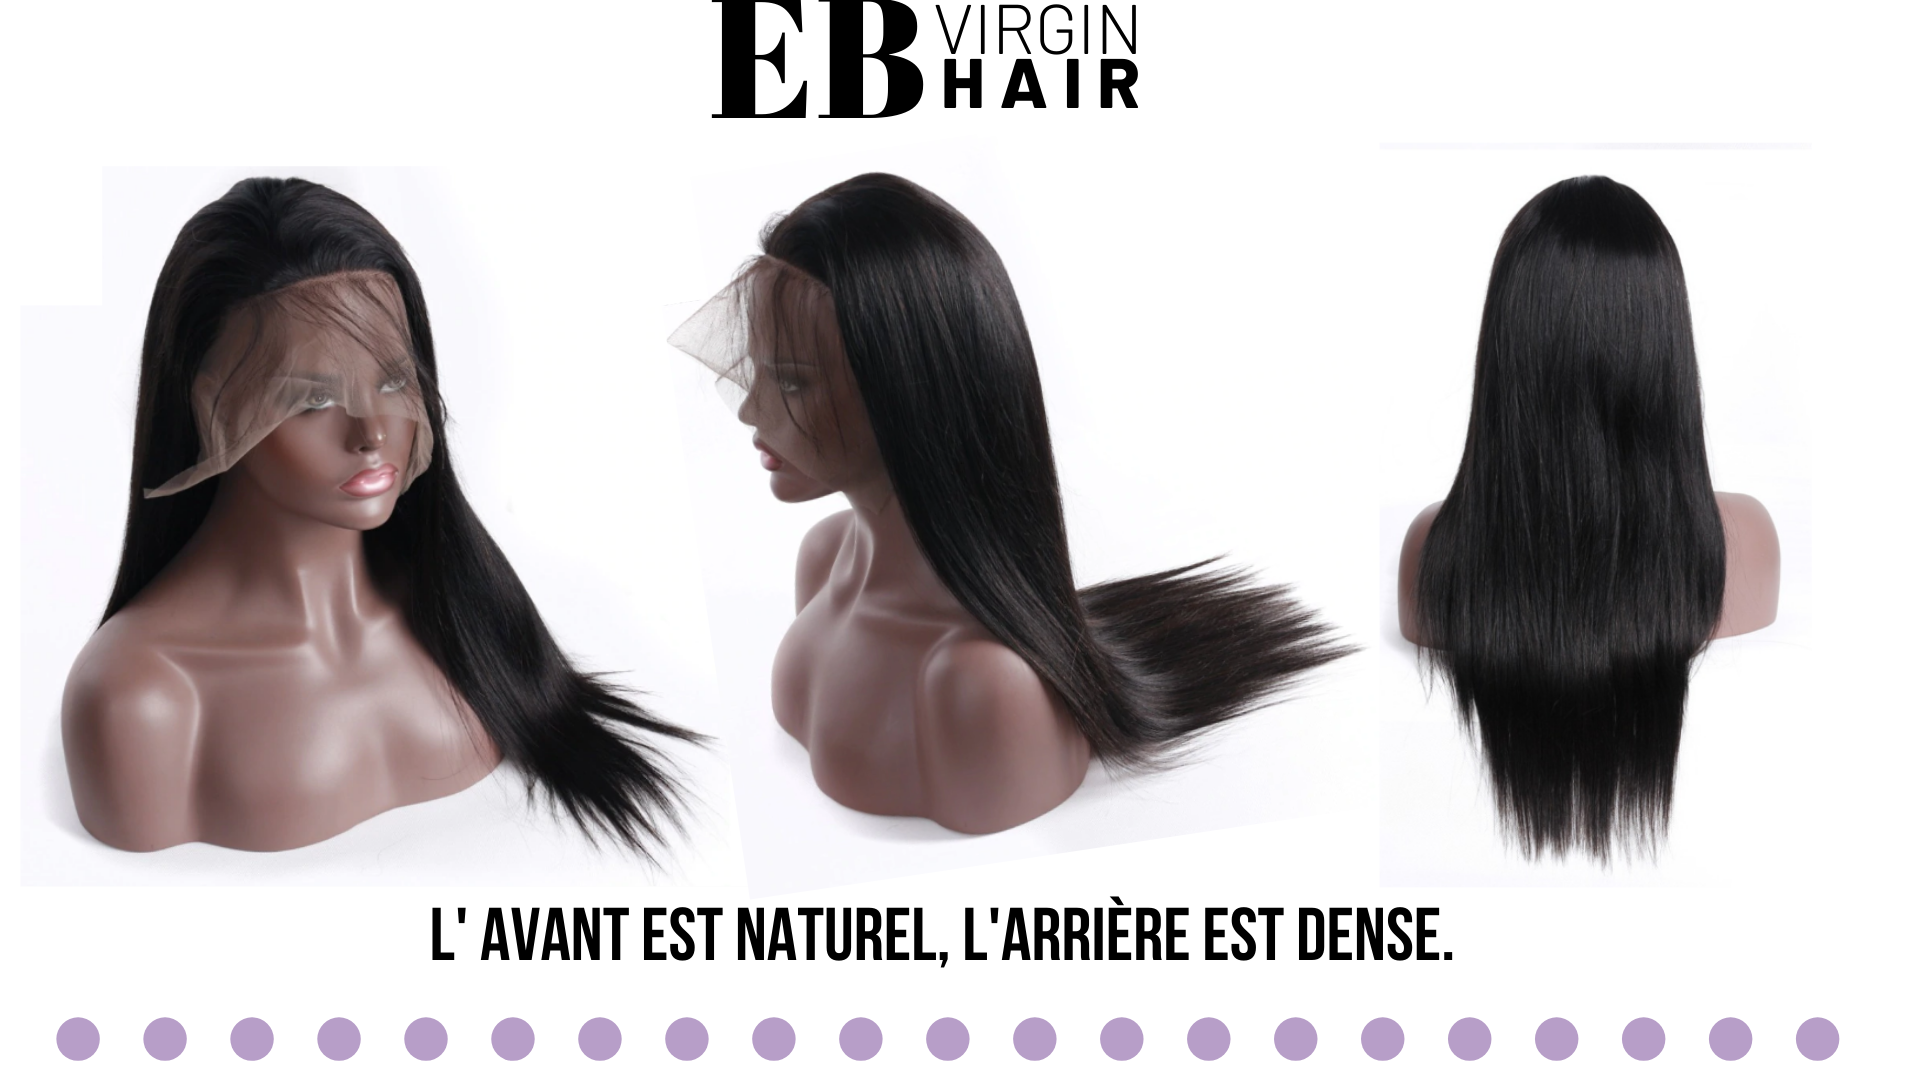 4-LA-LACE-FRONTAL-EB-VIRGIN-HAIR-la-tulle-et-la-densité-du-cheveu-baby-hair-naturel